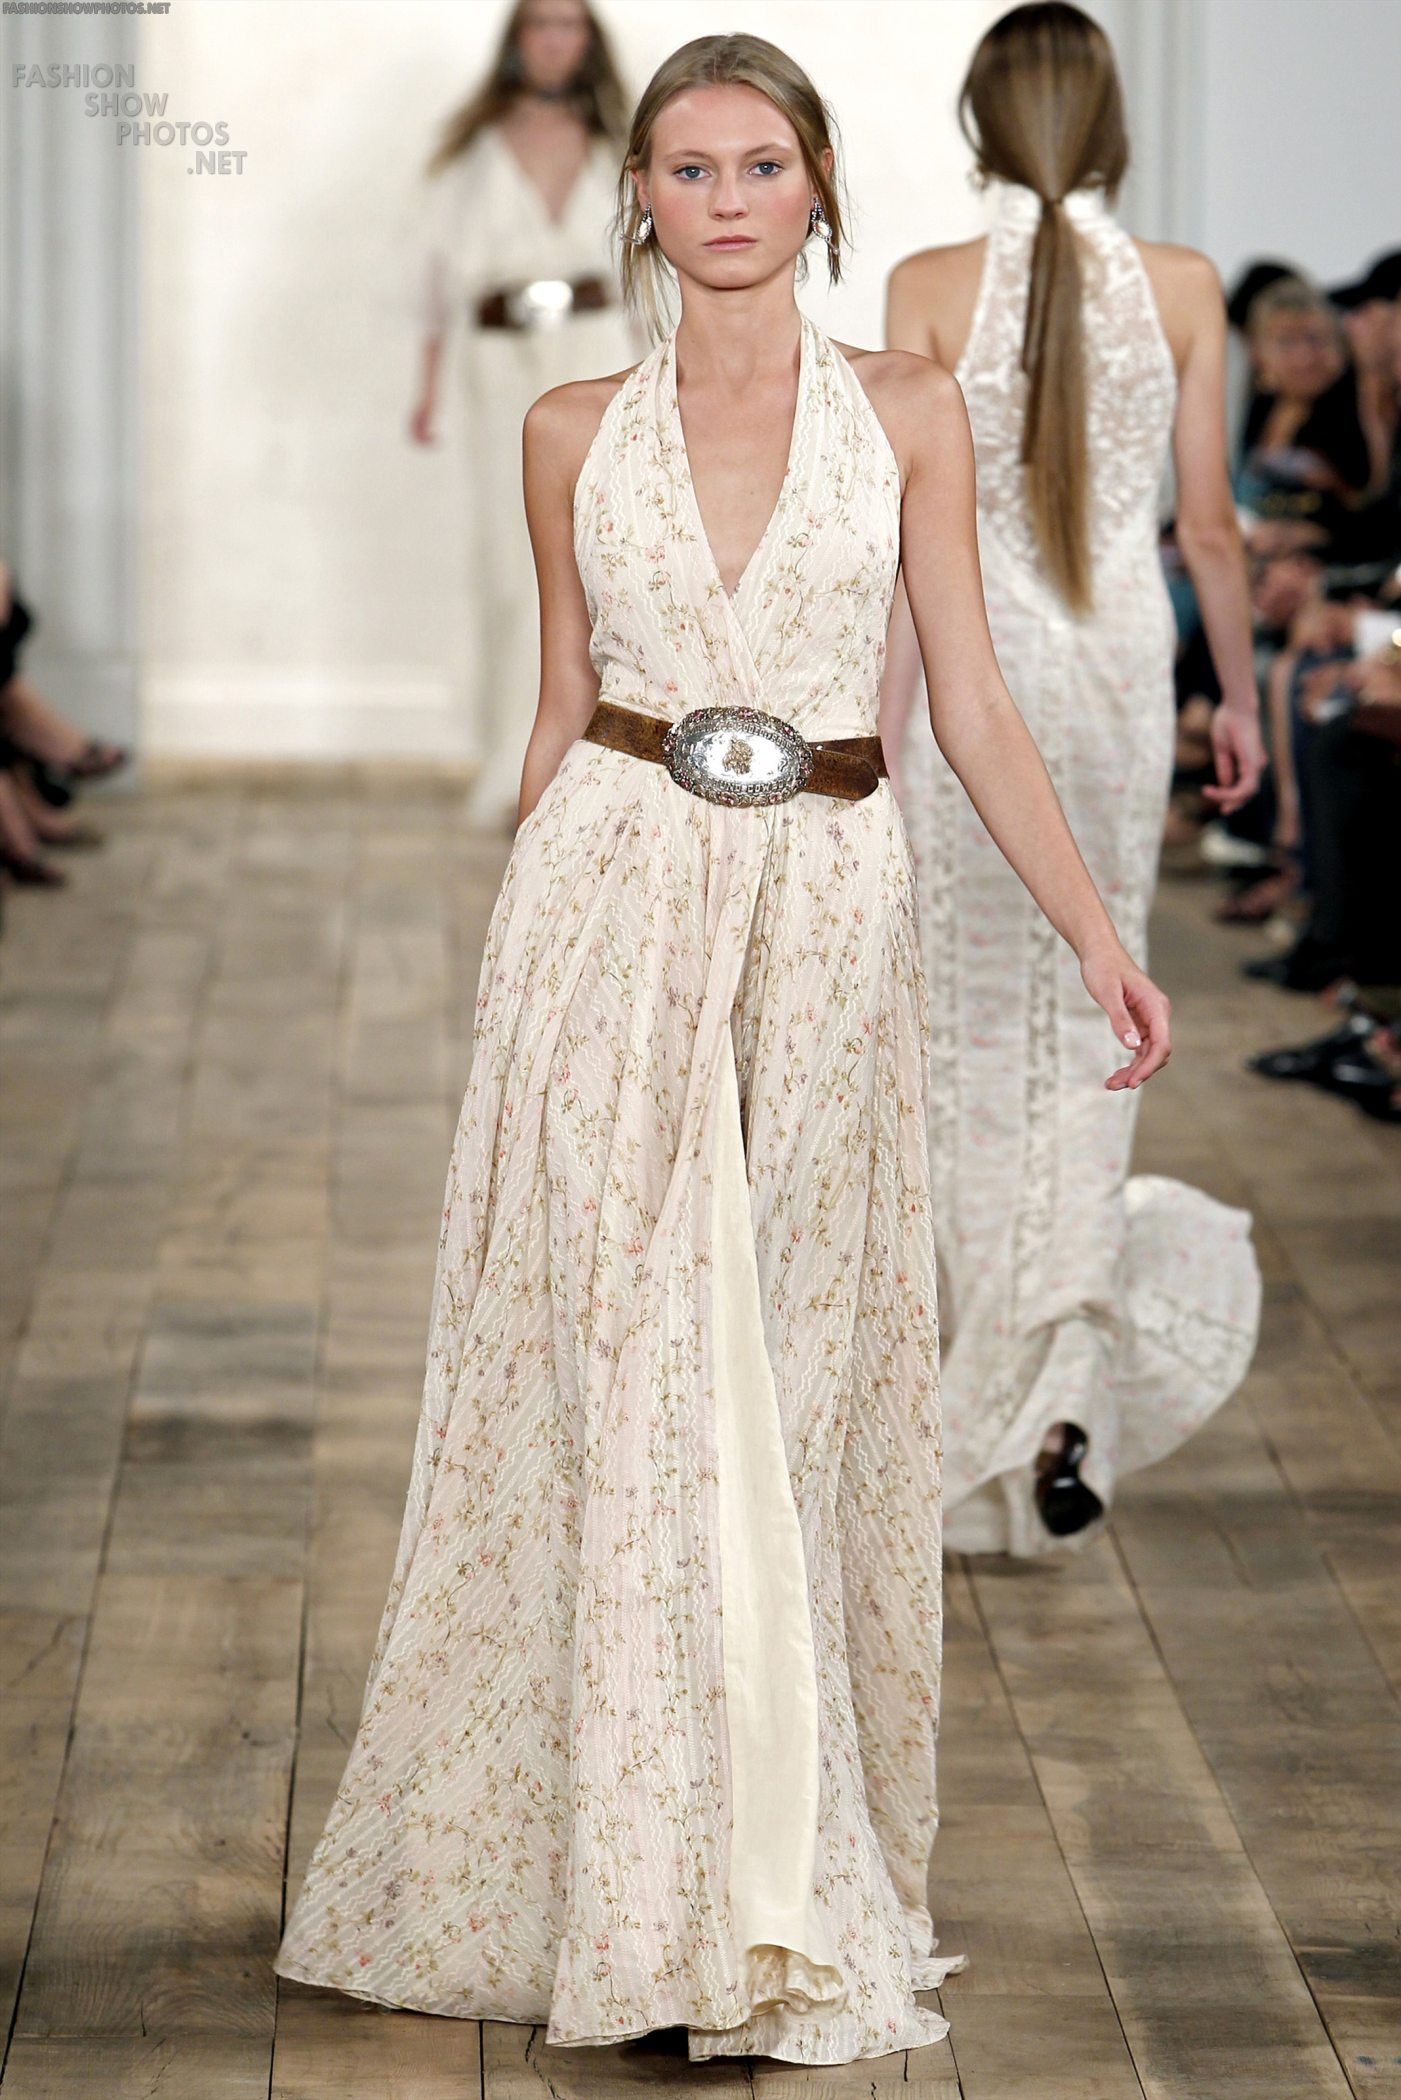 Ralph lauren passion for fashion pinterest ss passion and fashion